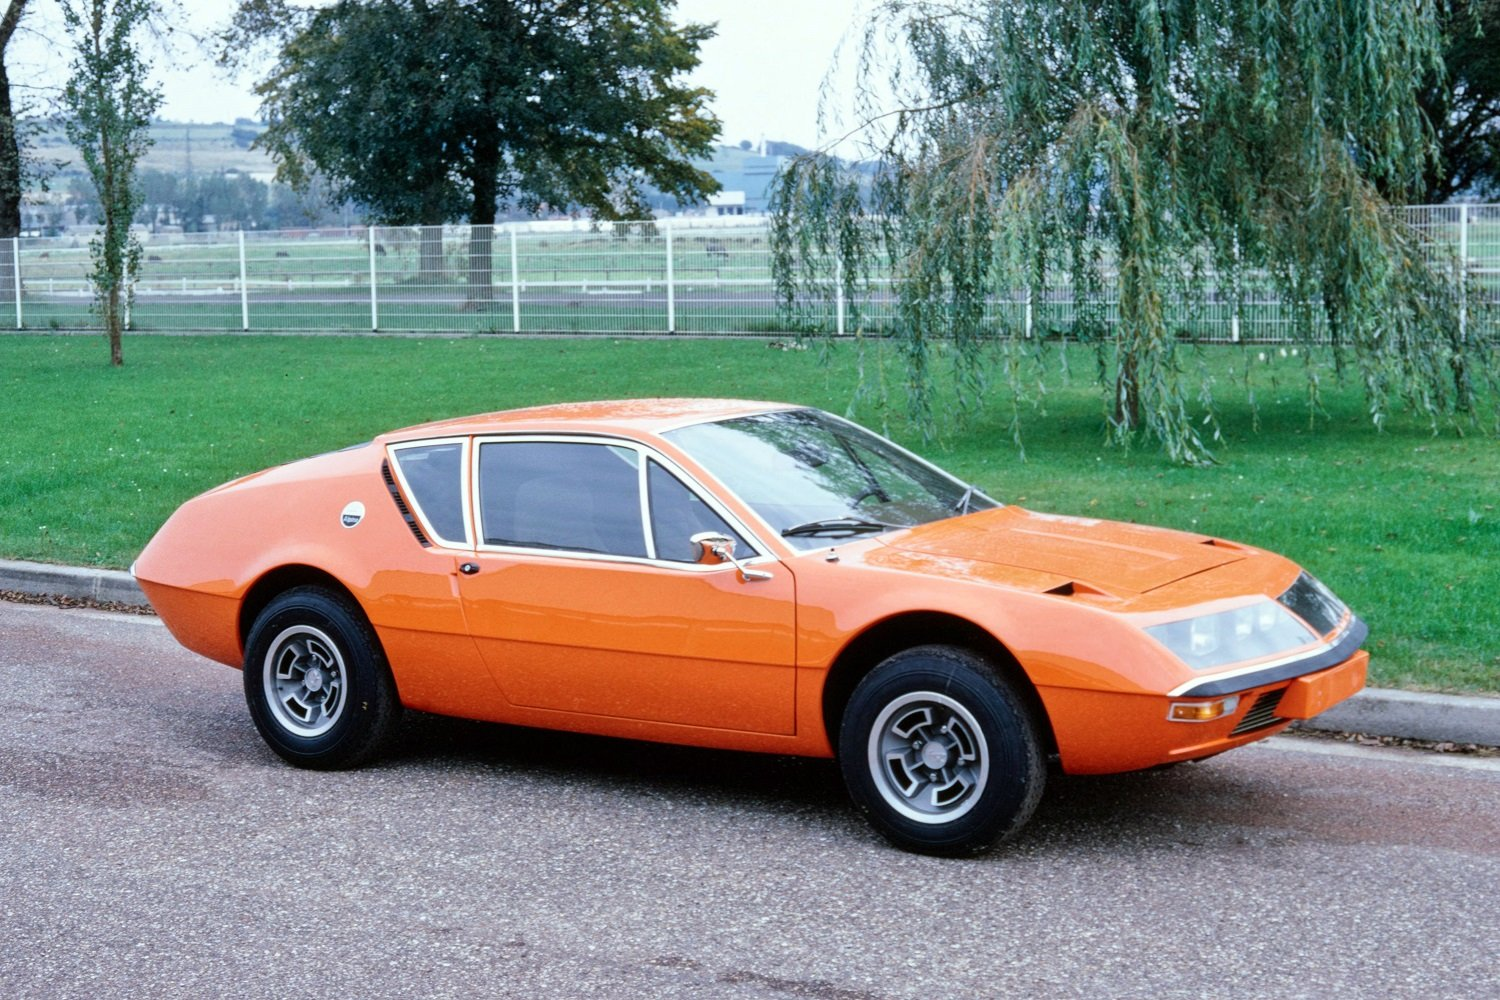 renault alpine a310 1973 cars coupe orange wallpaper. Black Bedroom Furniture Sets. Home Design Ideas